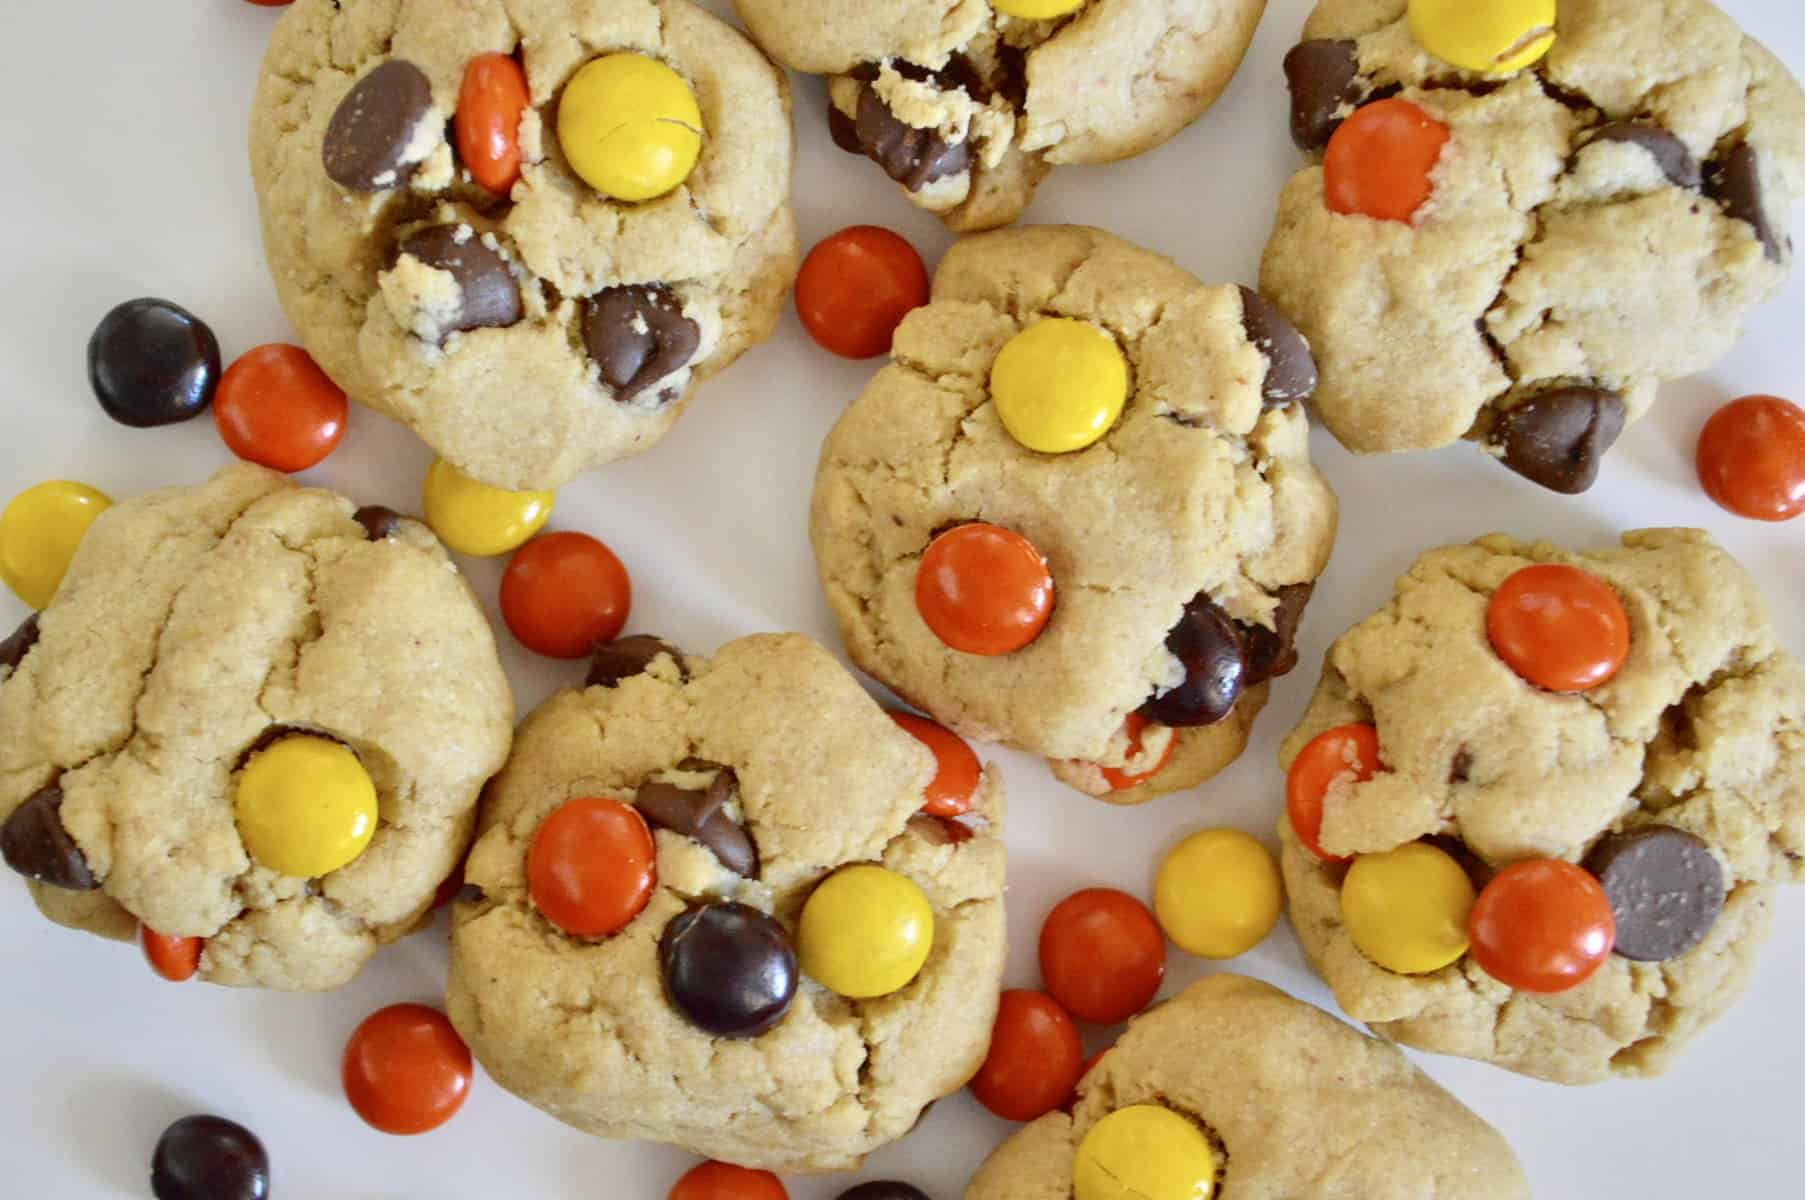 reeses pieces peanut butter chocolate chip cookies.